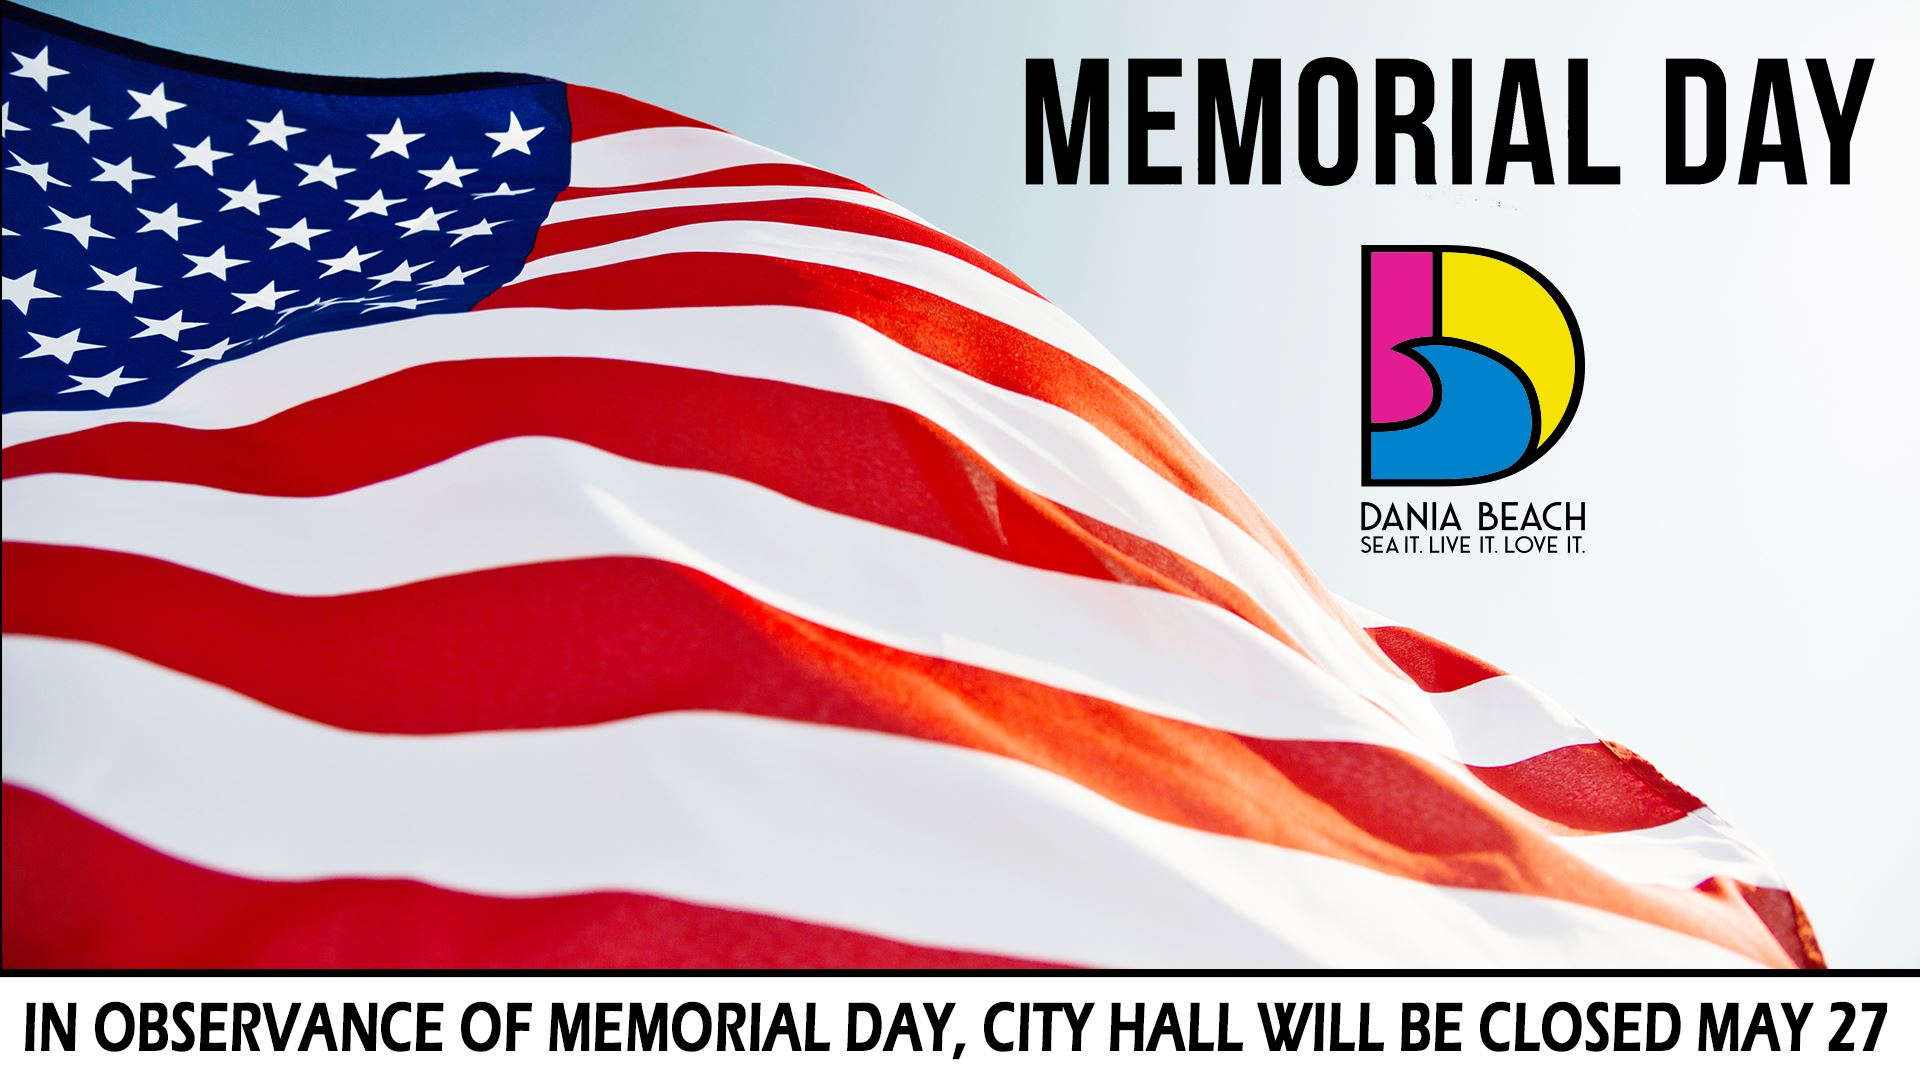 Happy Memorial Day 2019 Dania Beach